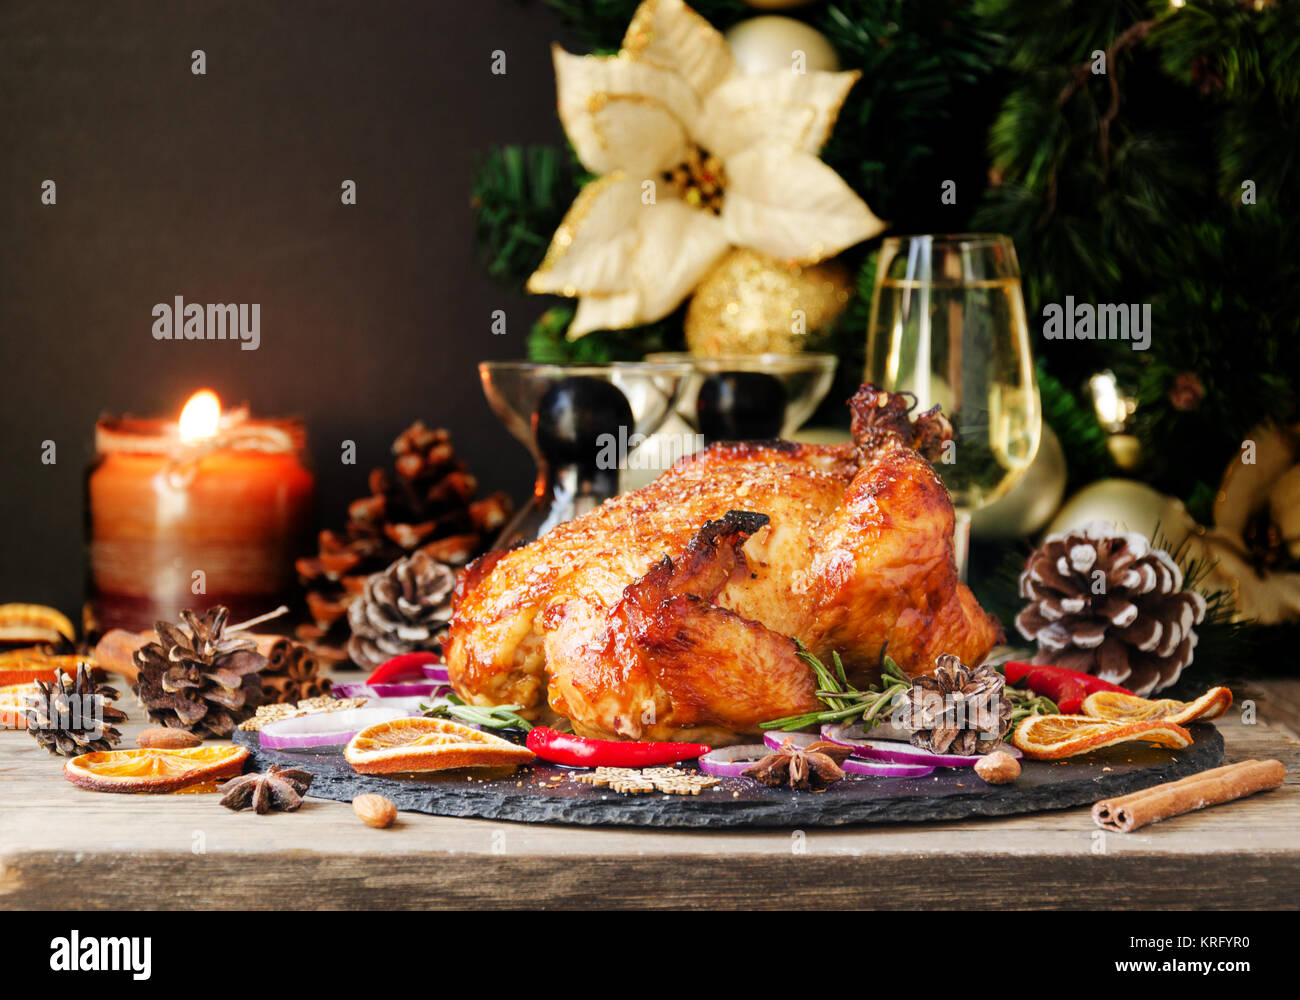 Roast Chicken Or Turkey For Christmas And New Year